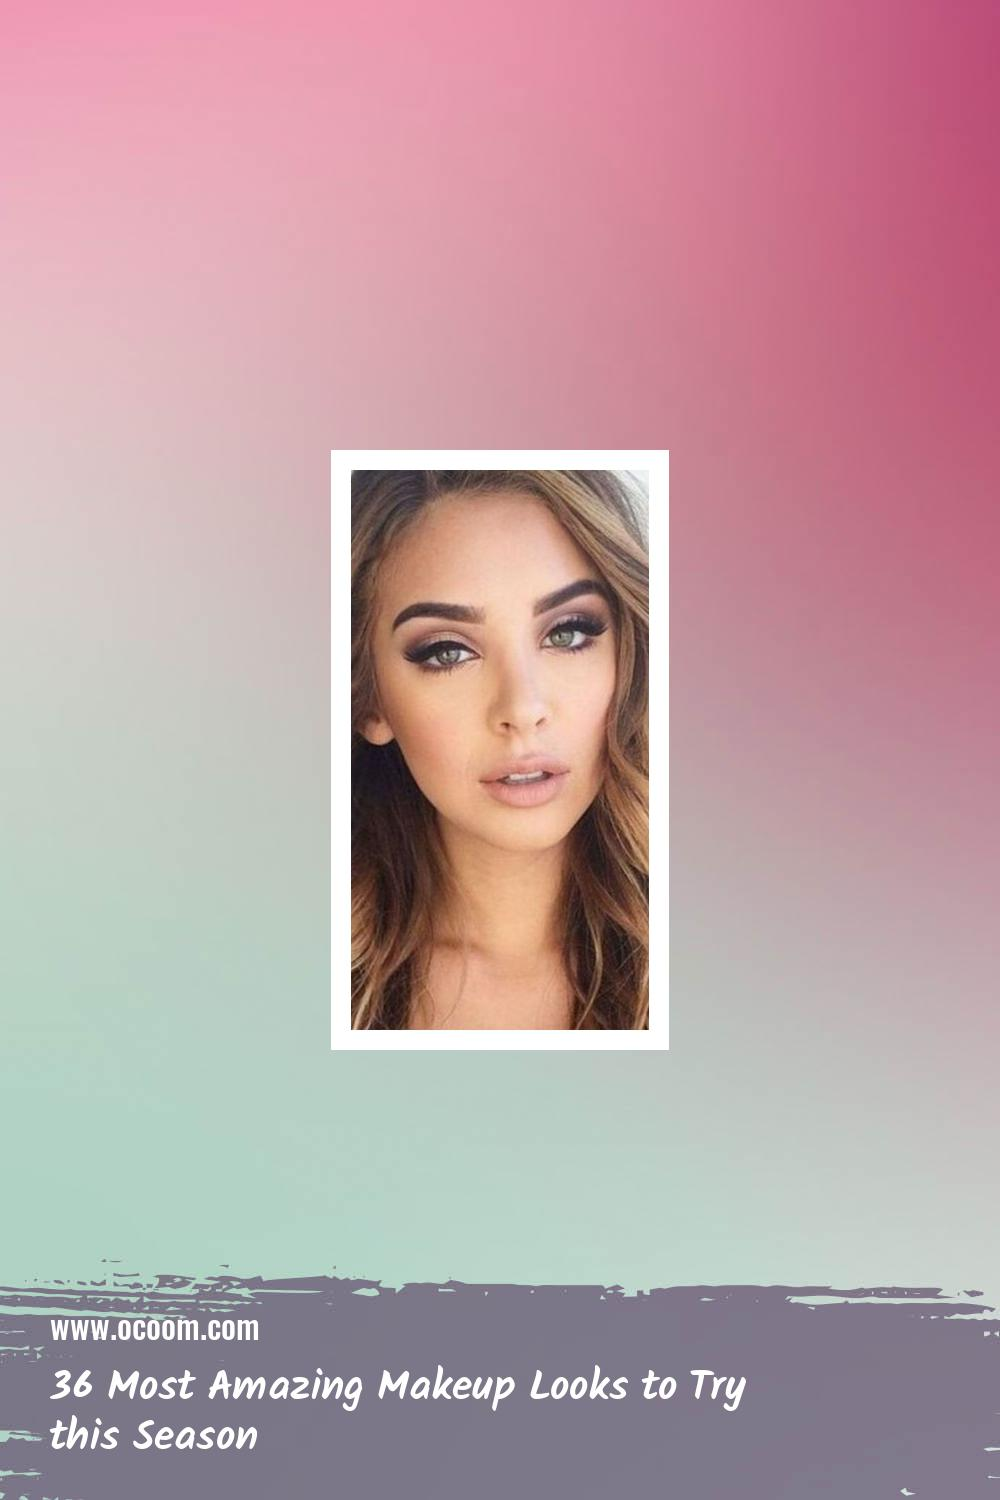 36 Most Amazing Makeup Looks to Try this Season 31